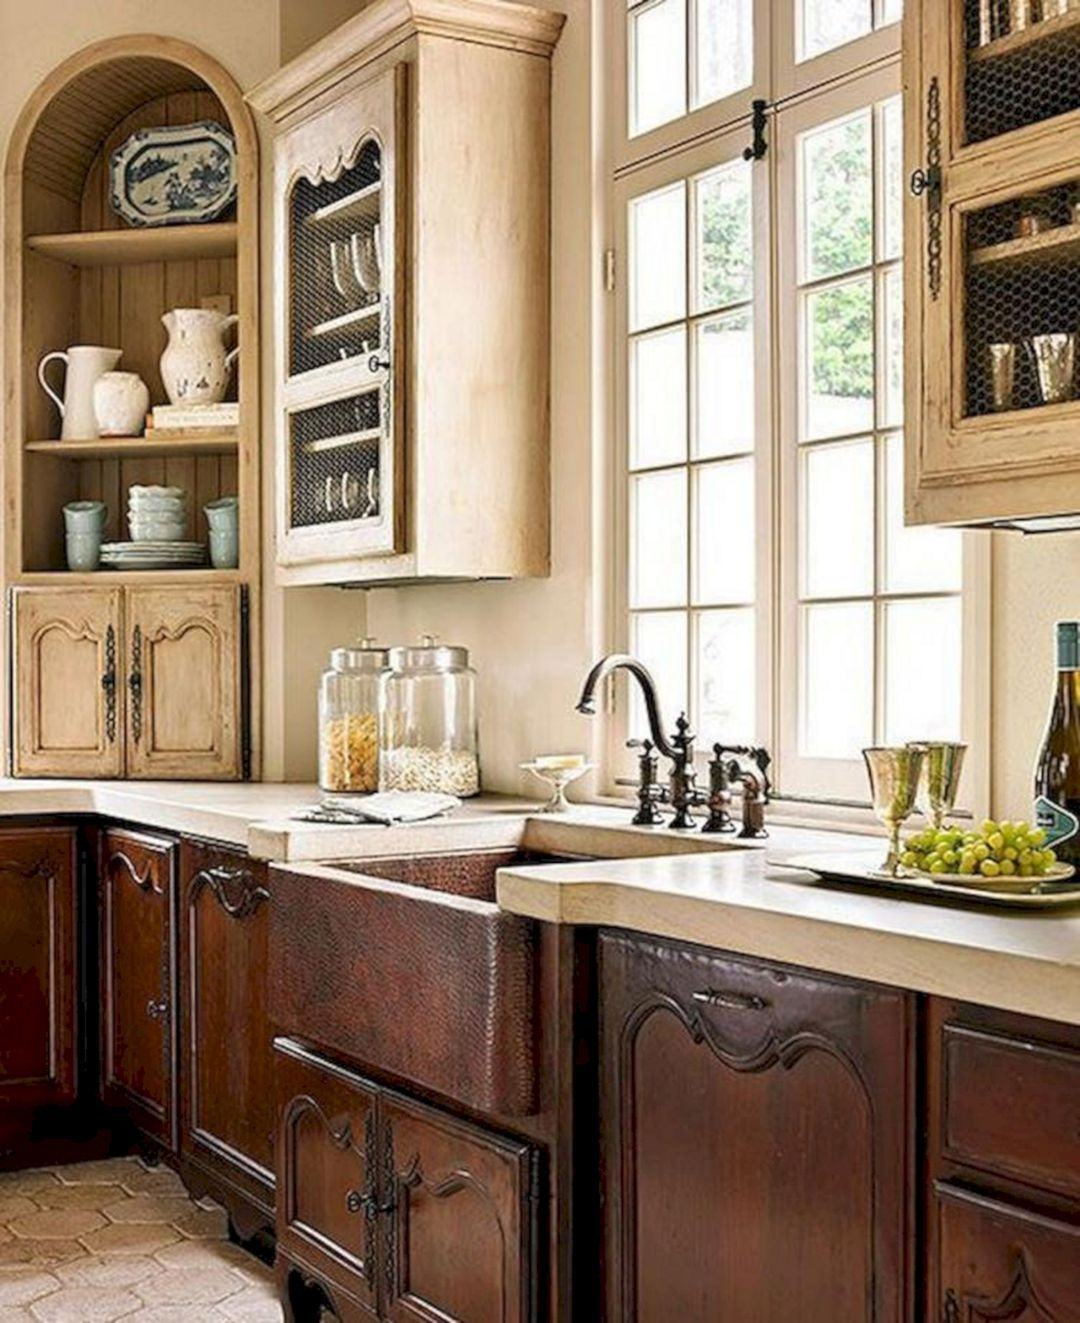 12+ Beautiful Simple French Country Kitchen Ideas For Small Space #frenchcountrykitchens